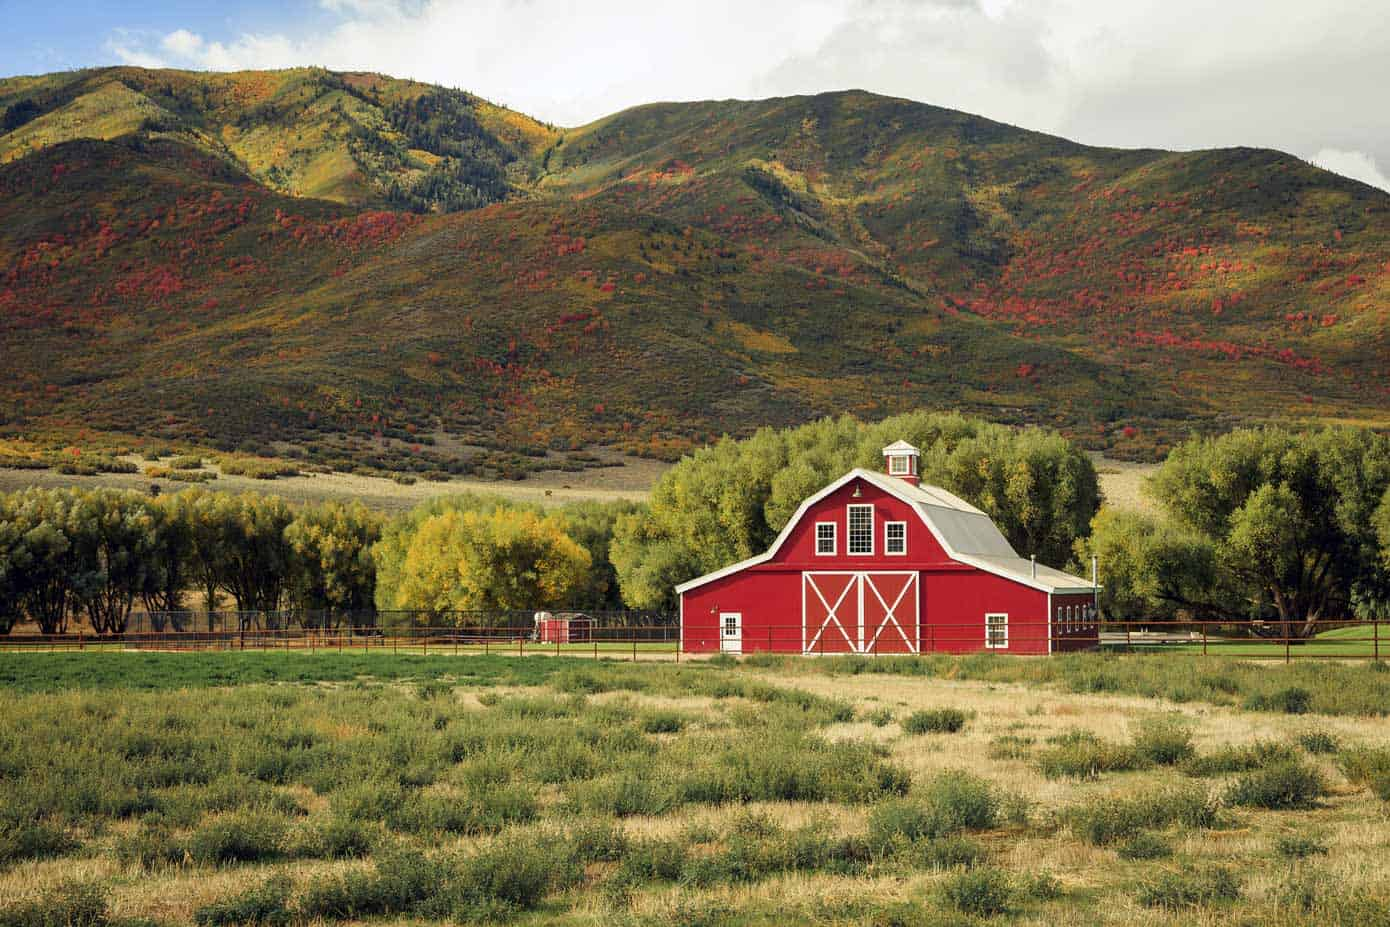 Picturesque red barn with rolling hills in the background.